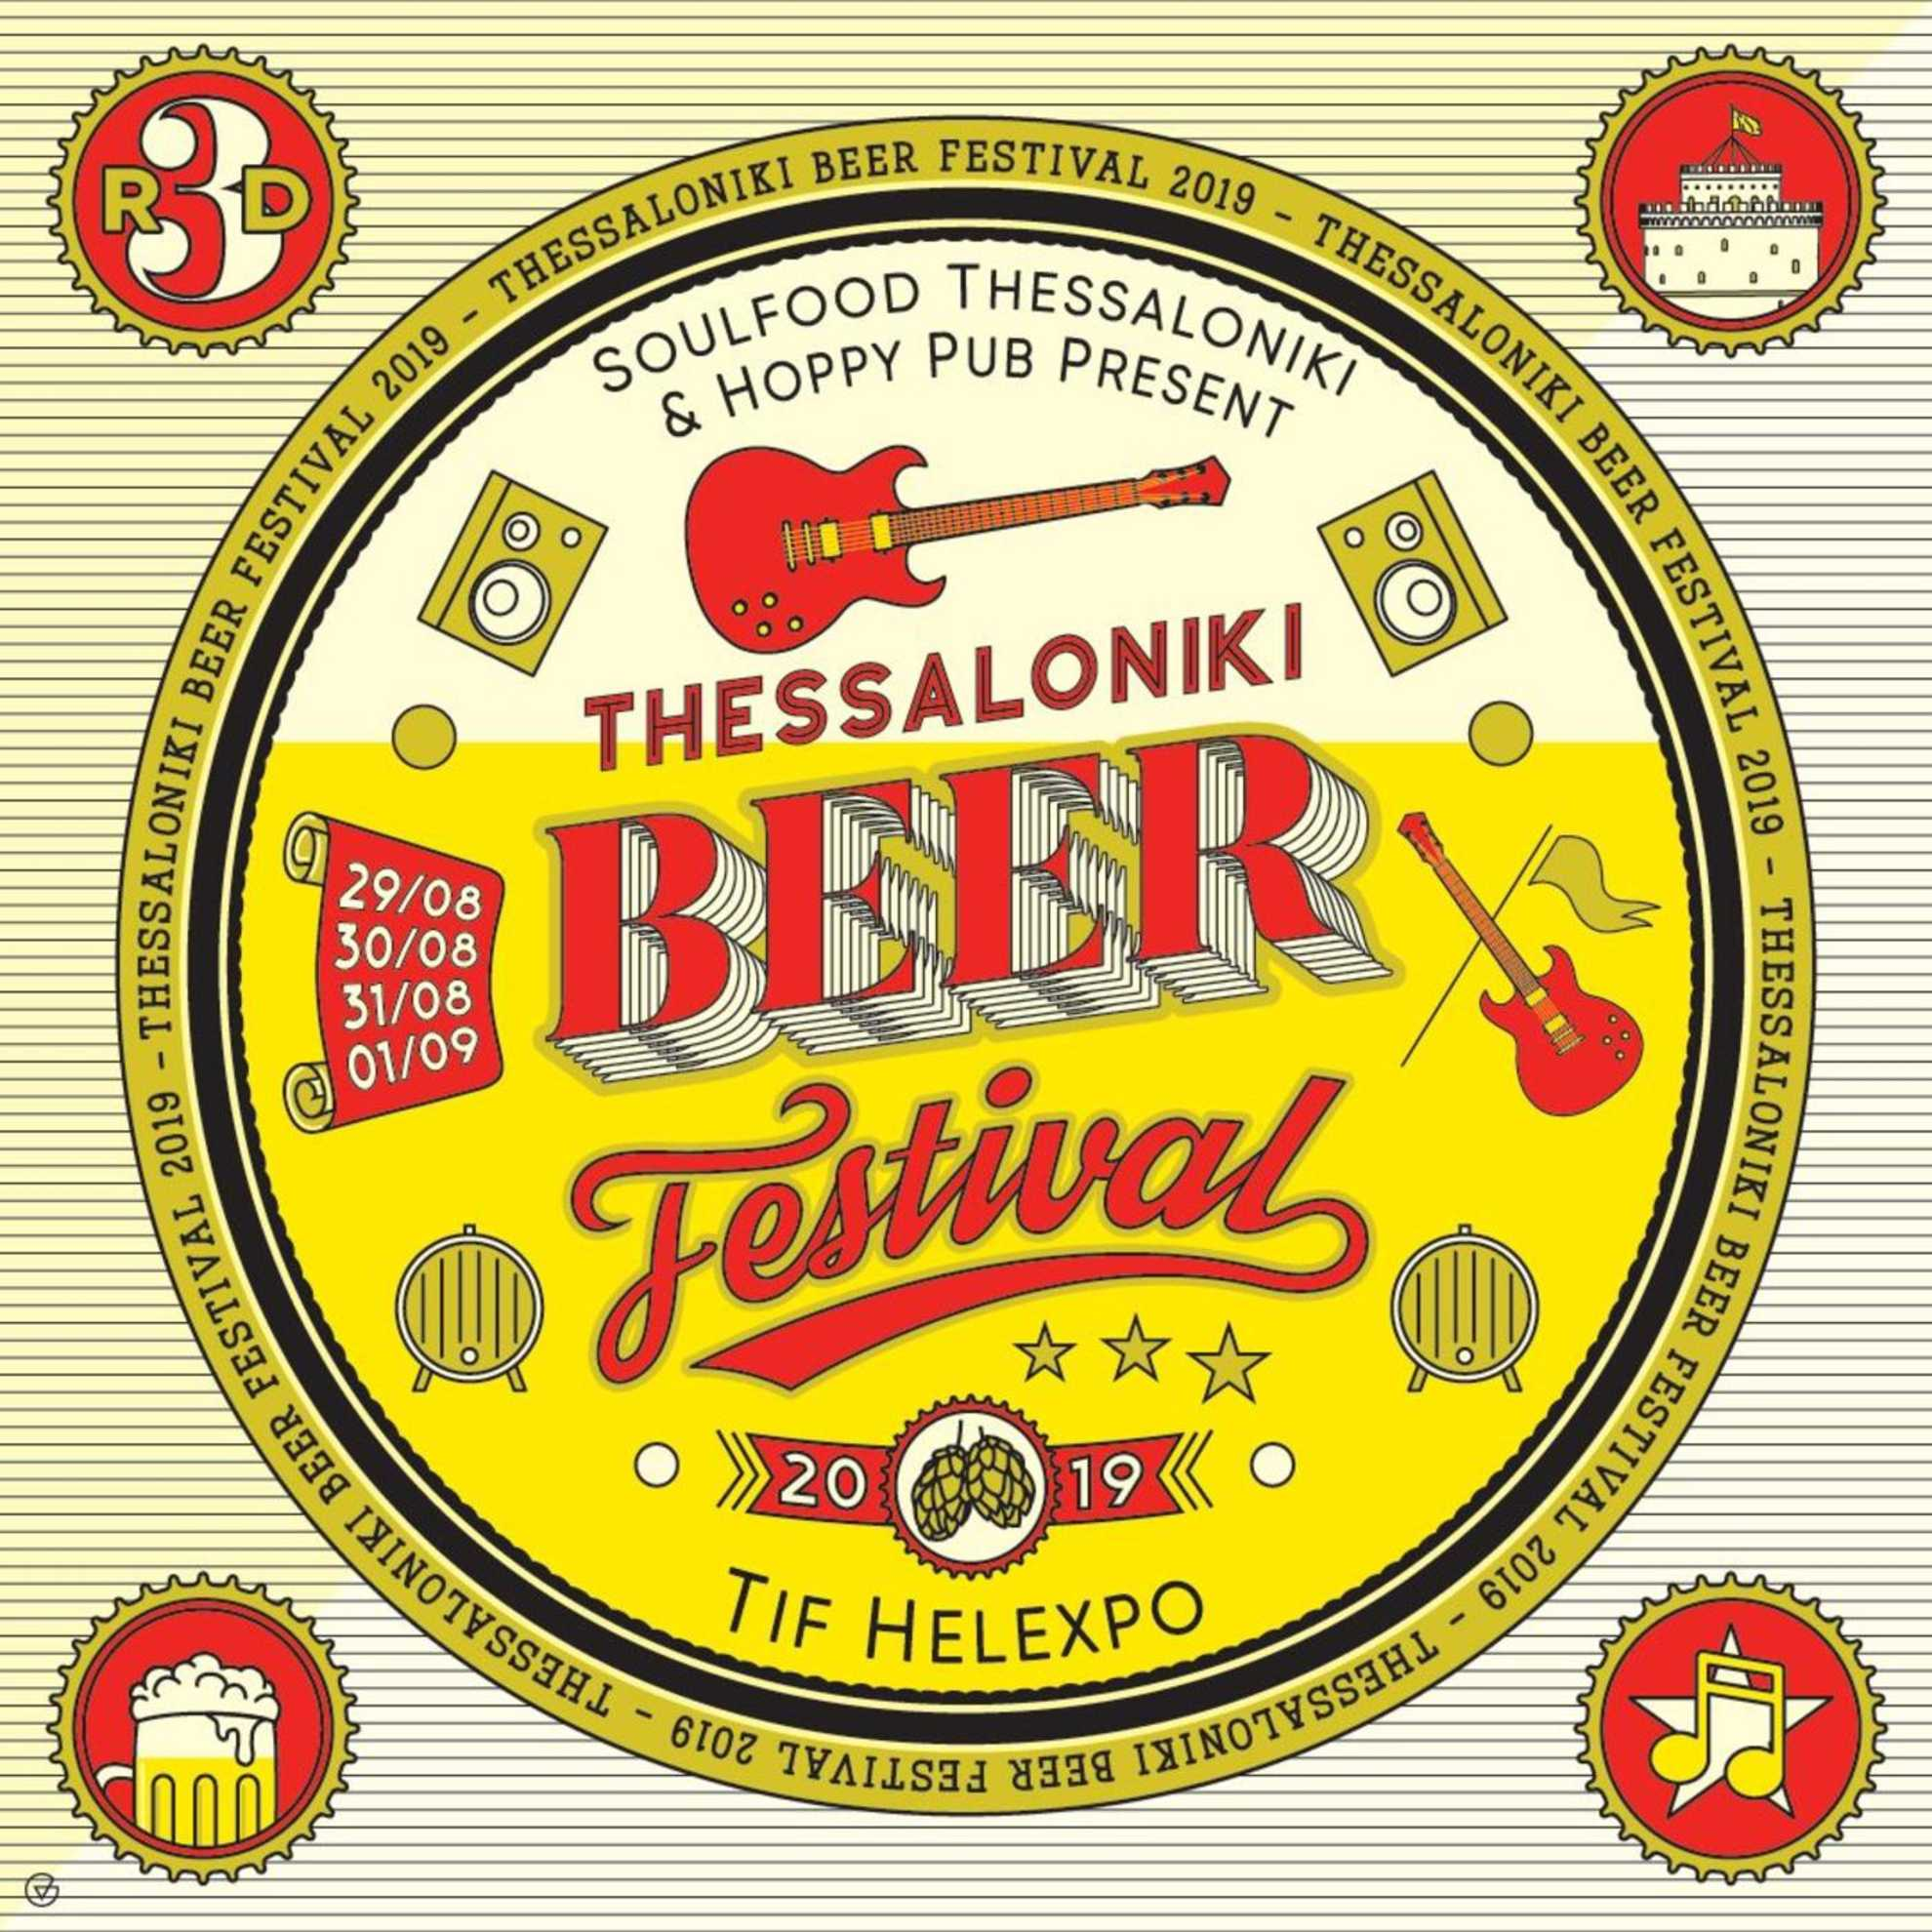 Thessaloniki Beer Festival 2019 με Π. Παυλίδη, Max the Sax, Locomondo και Koza Mostra